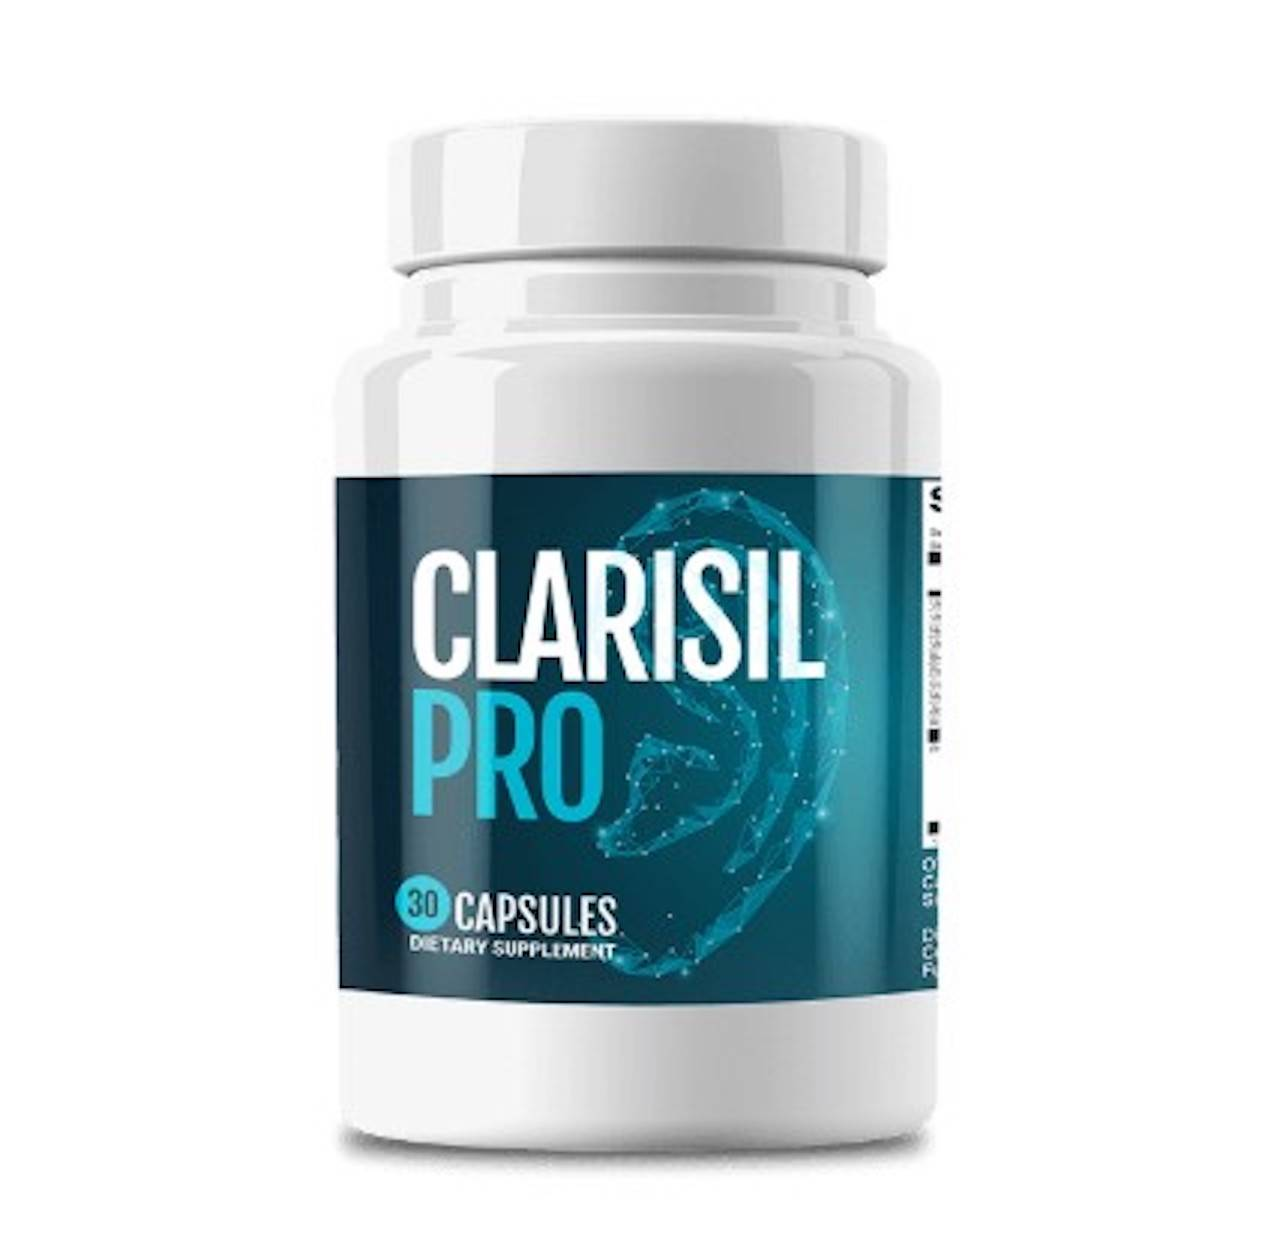 Clarisil Pro Product